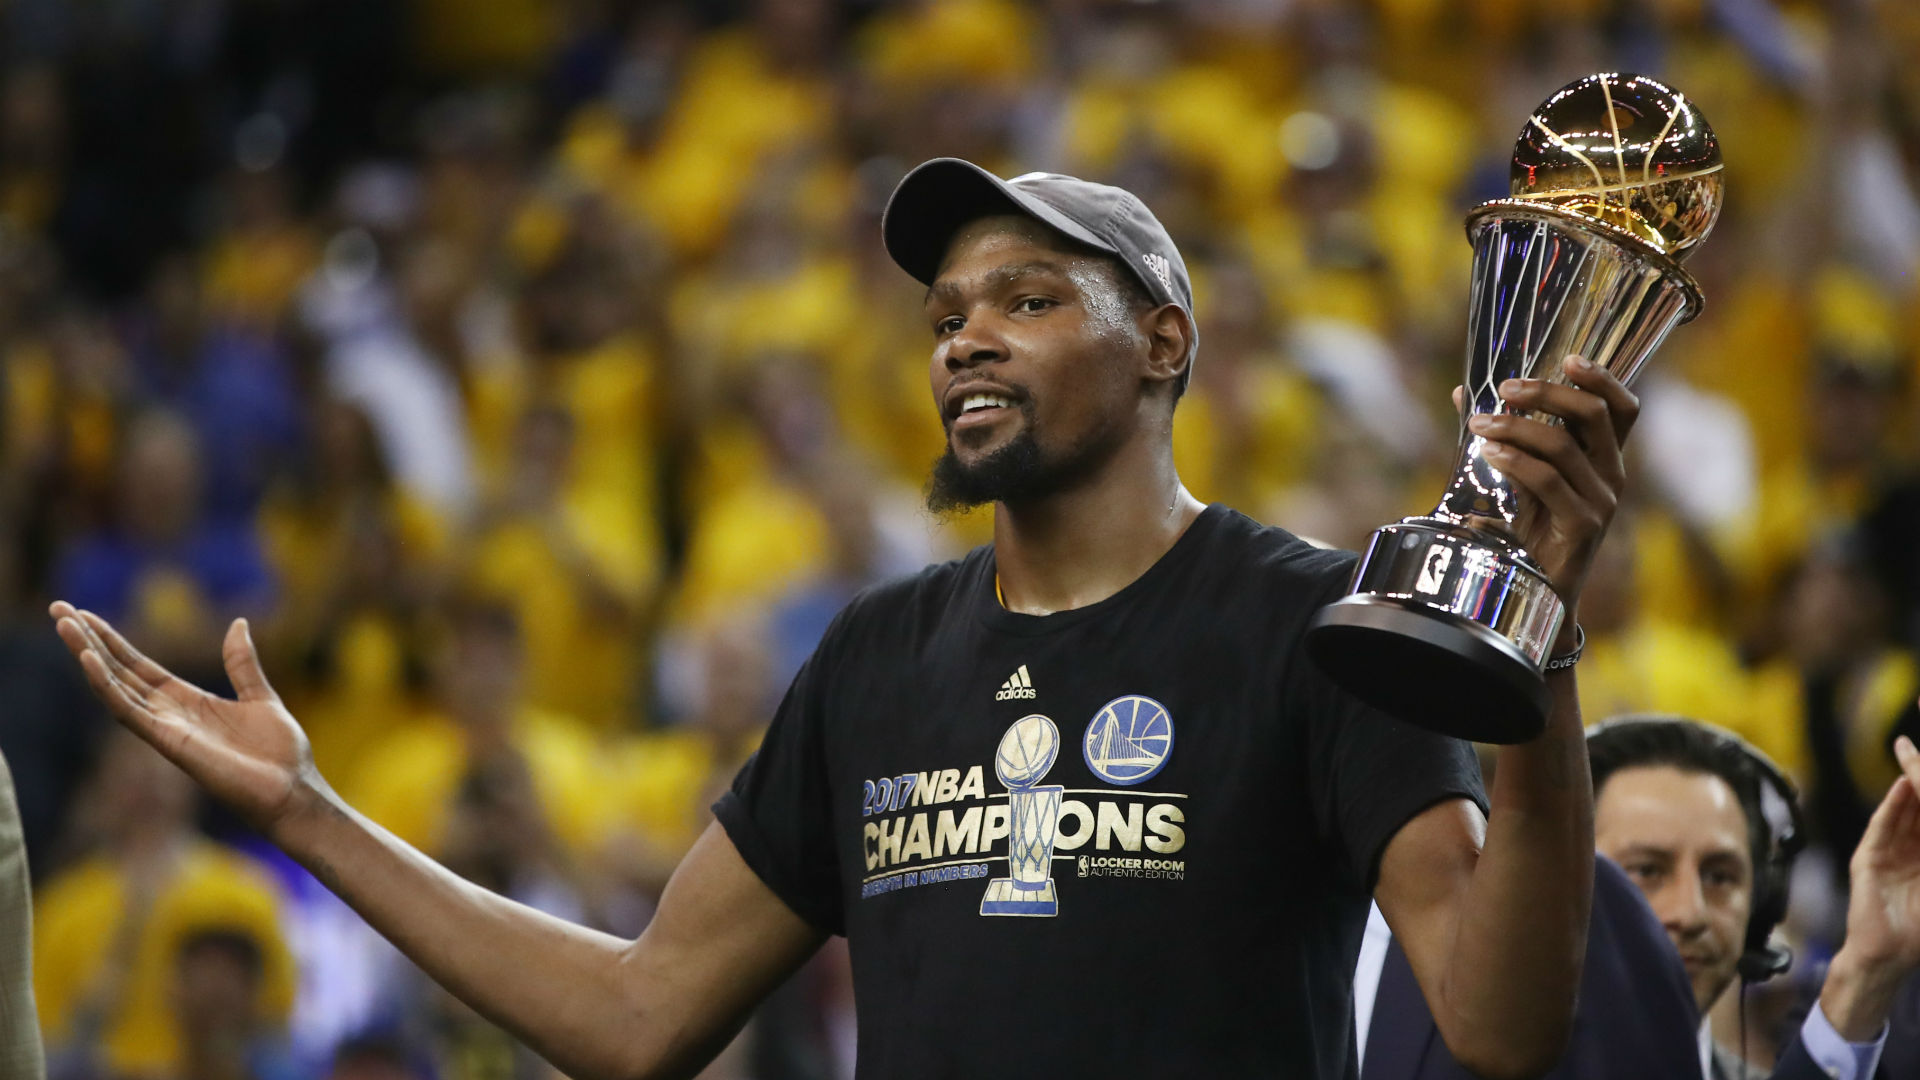 Who are NBA champions Golden State?